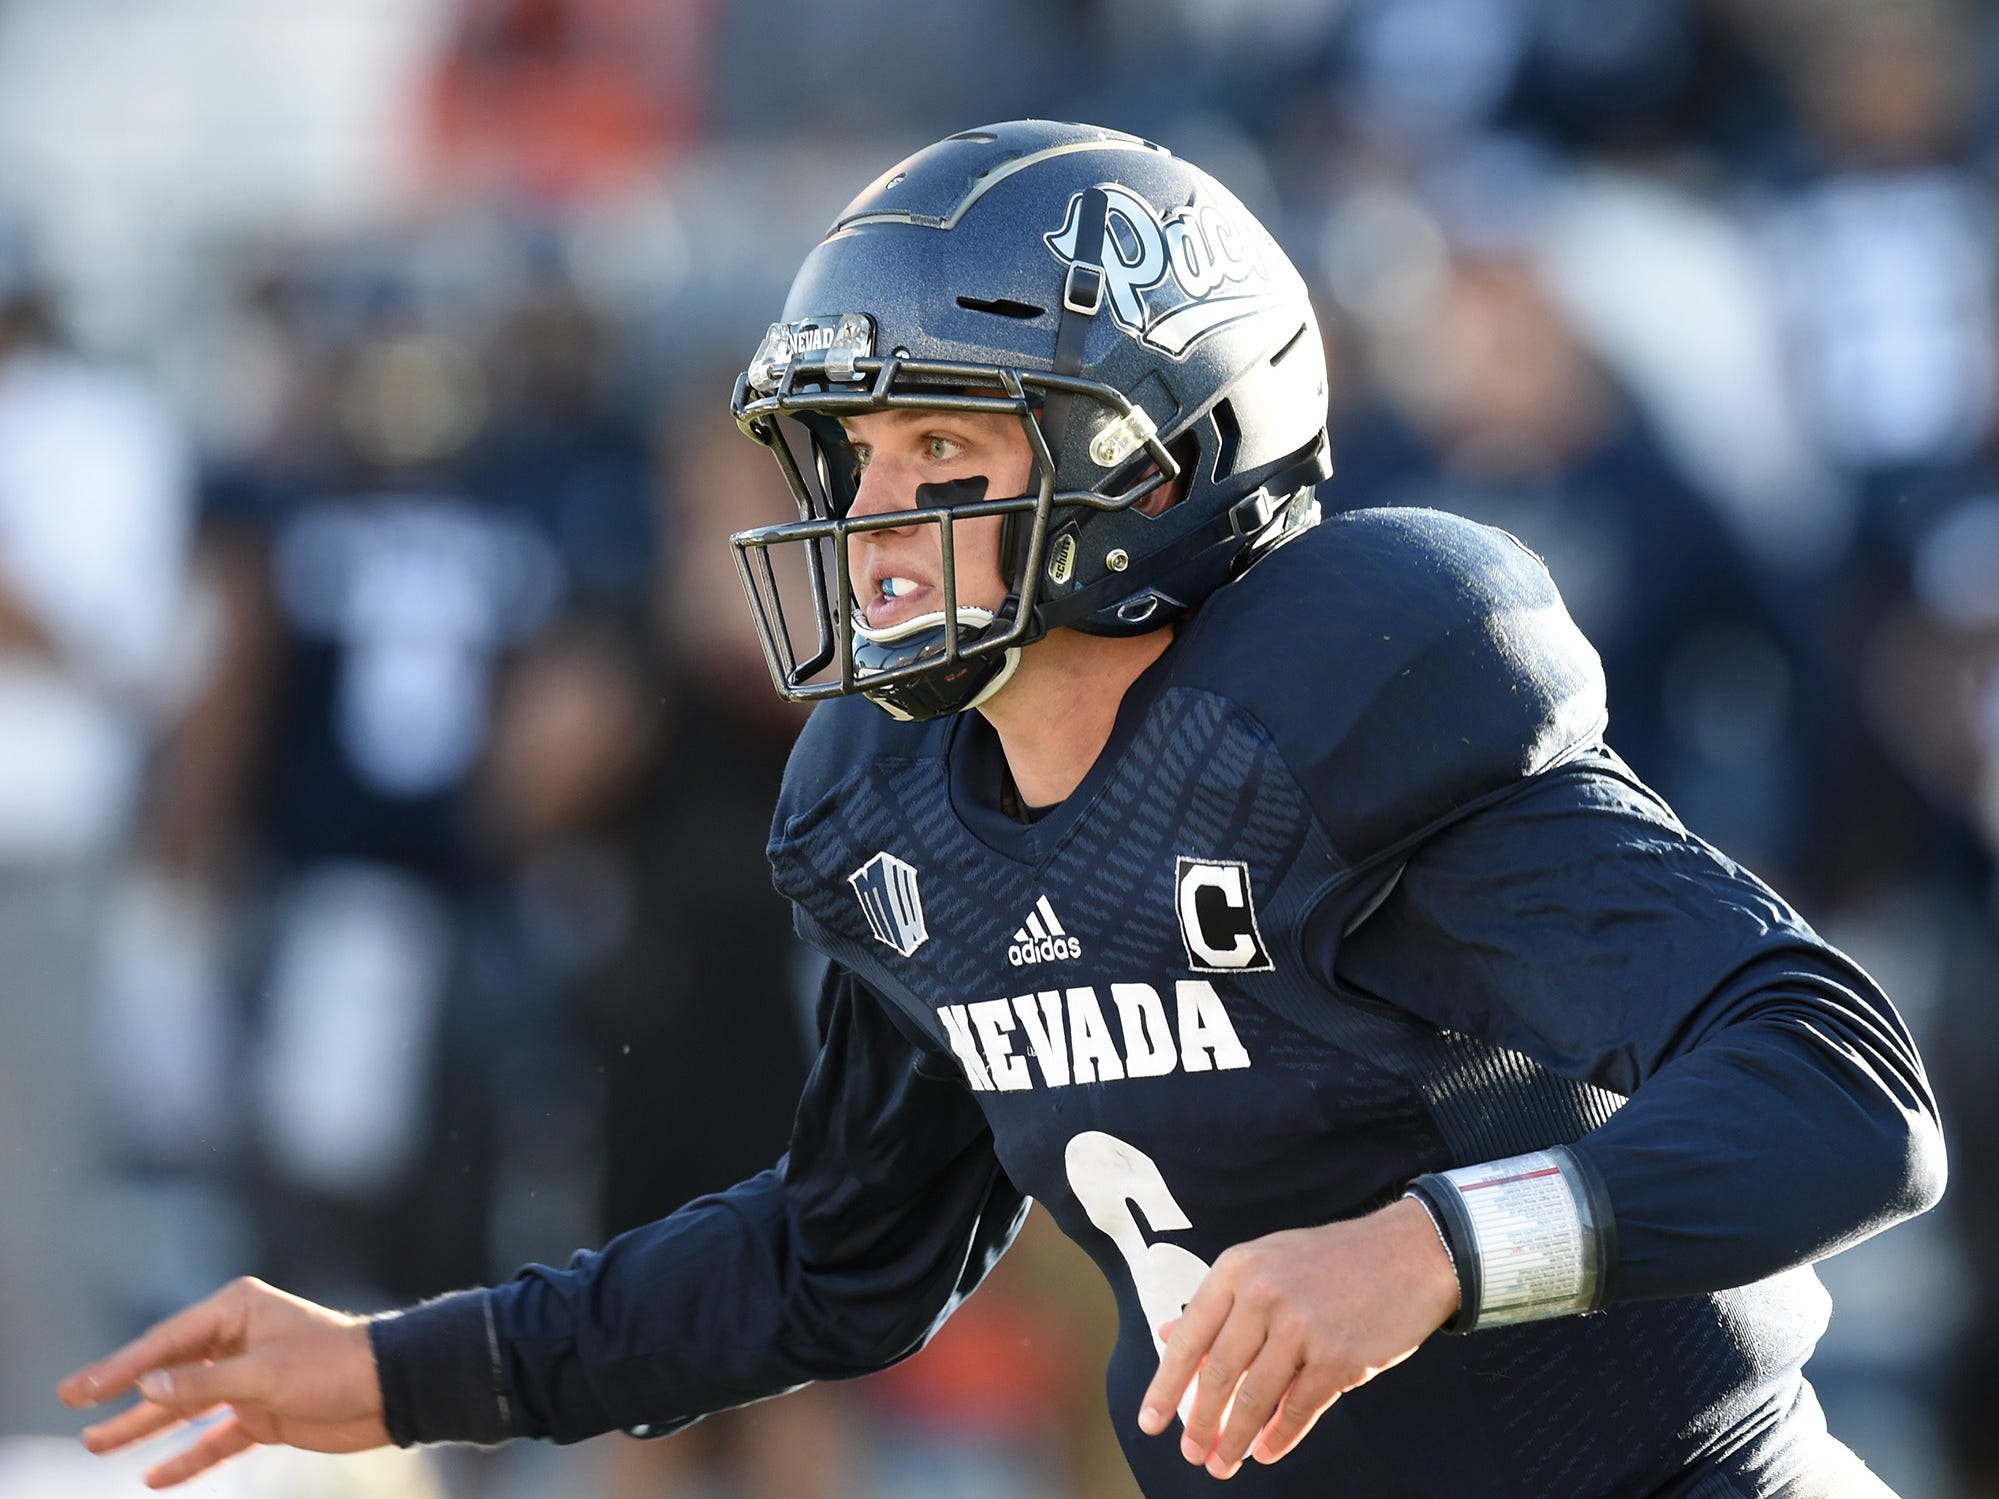 Nevada QB Ty Gangi watches a hand-off he made against Oregon State   at Mackay Stadium on Sept. 15, 2018.